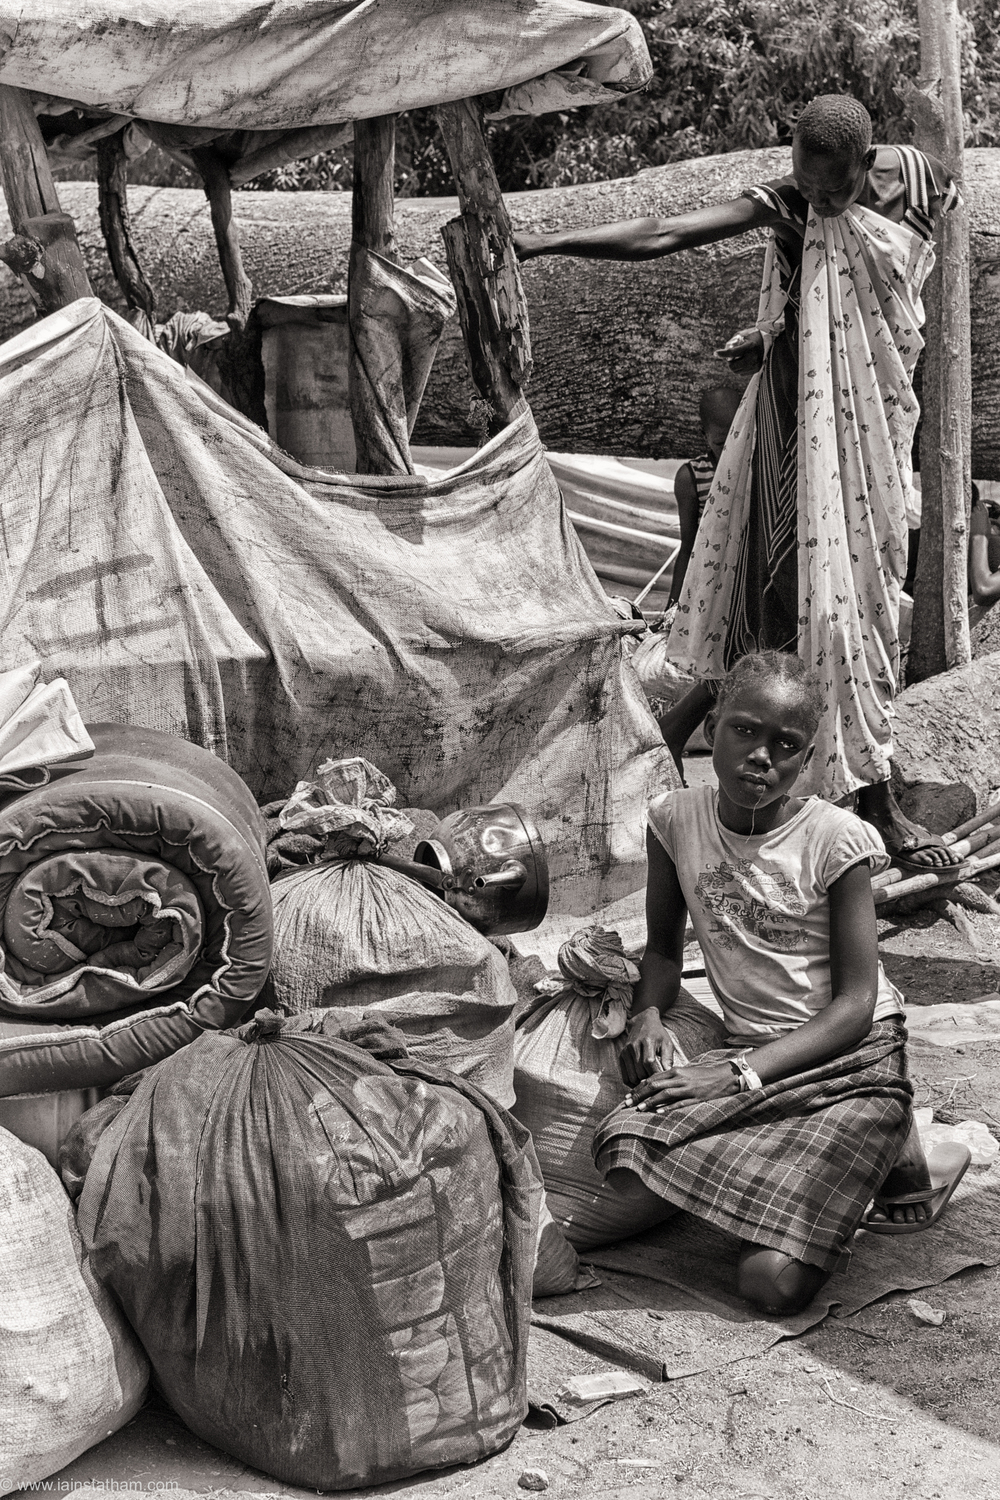 ug - south sudan refugees - dziapi - bw-7.jpg